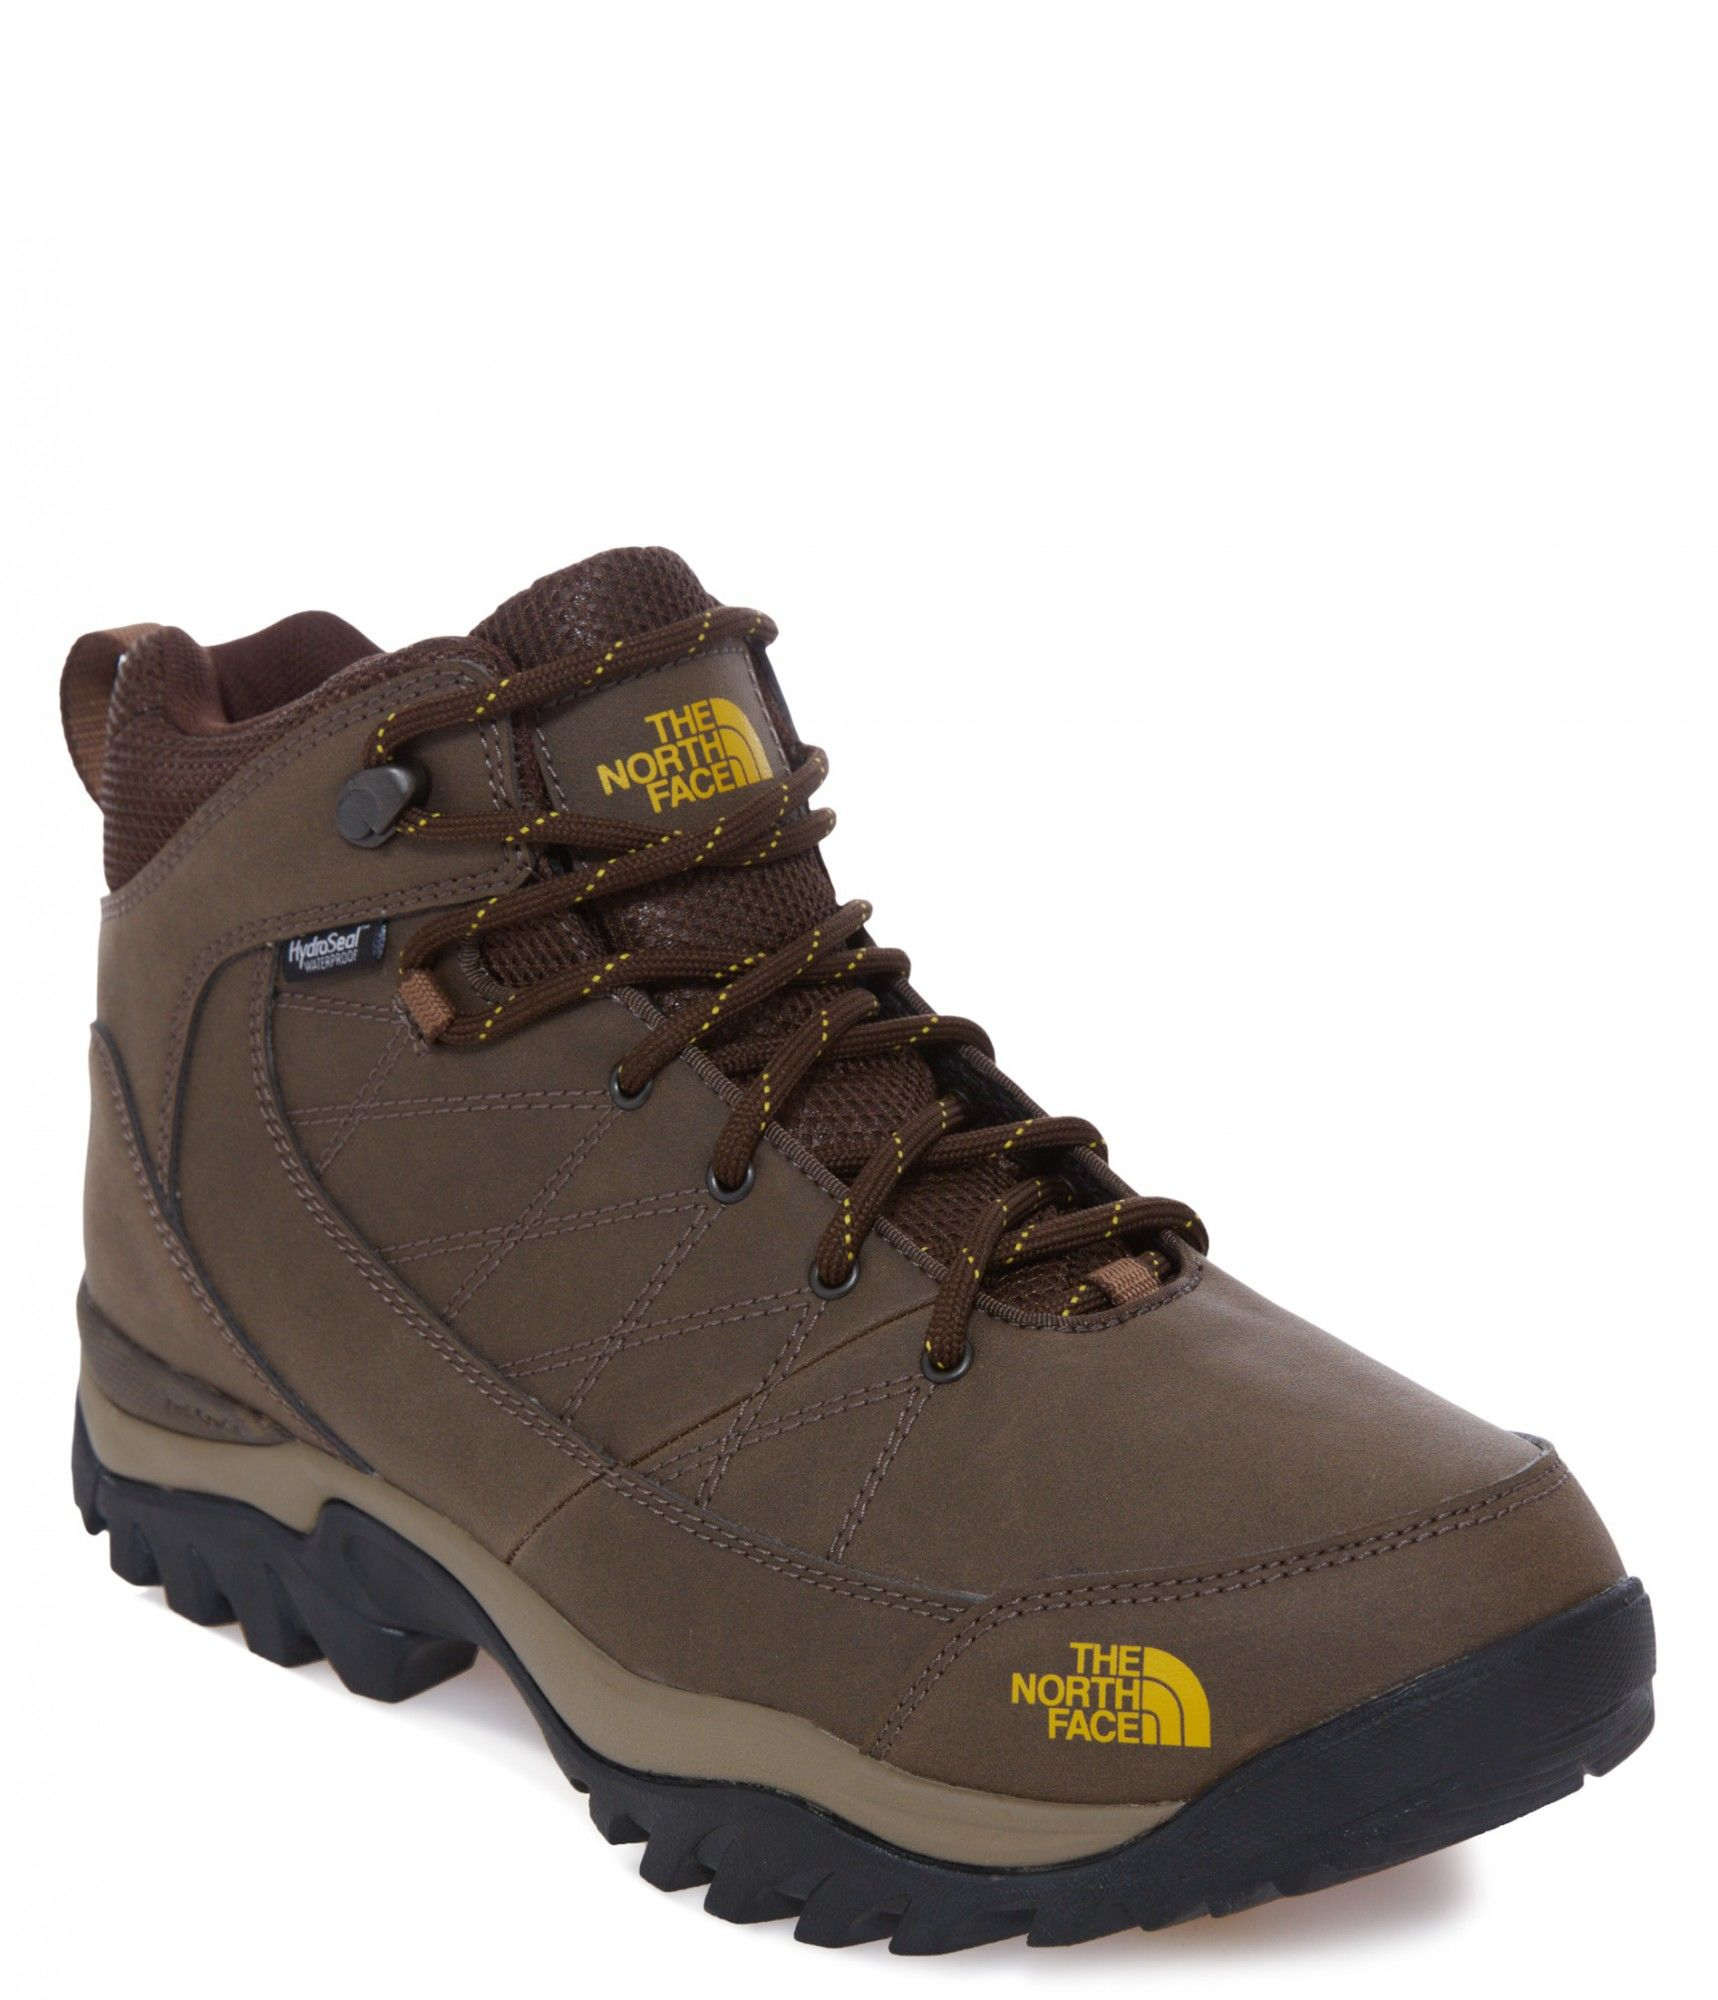 The North Face Storm Strike Waterproof Braun, Male Hiking-& Approach-Schuh, 41